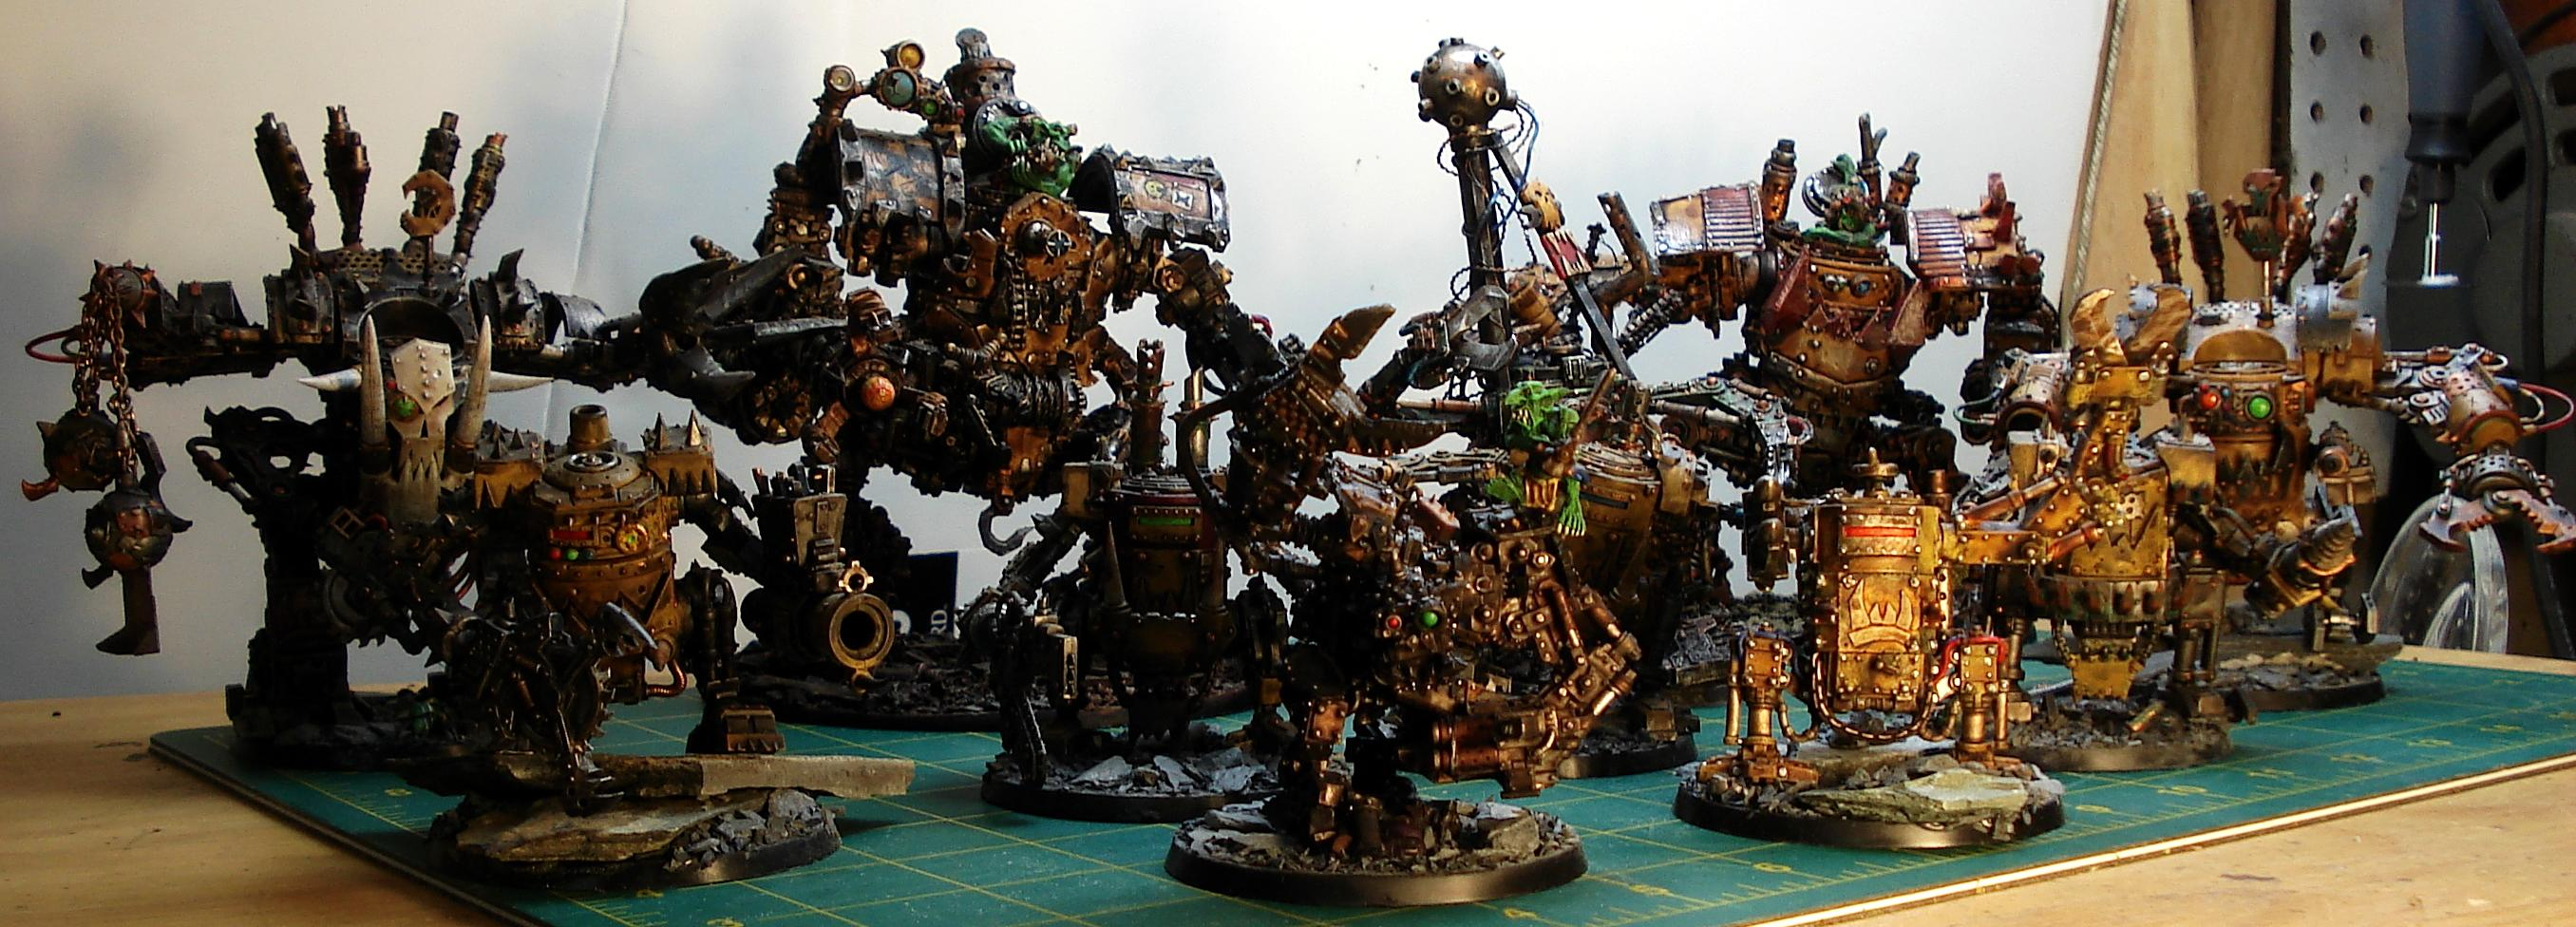 Bad, Claw, Comission, Custom, Deff, Dreadnought, Field, Force, Kustom, Mega, Moons, Orks, Scrap, Space, Space Marines, Trukk